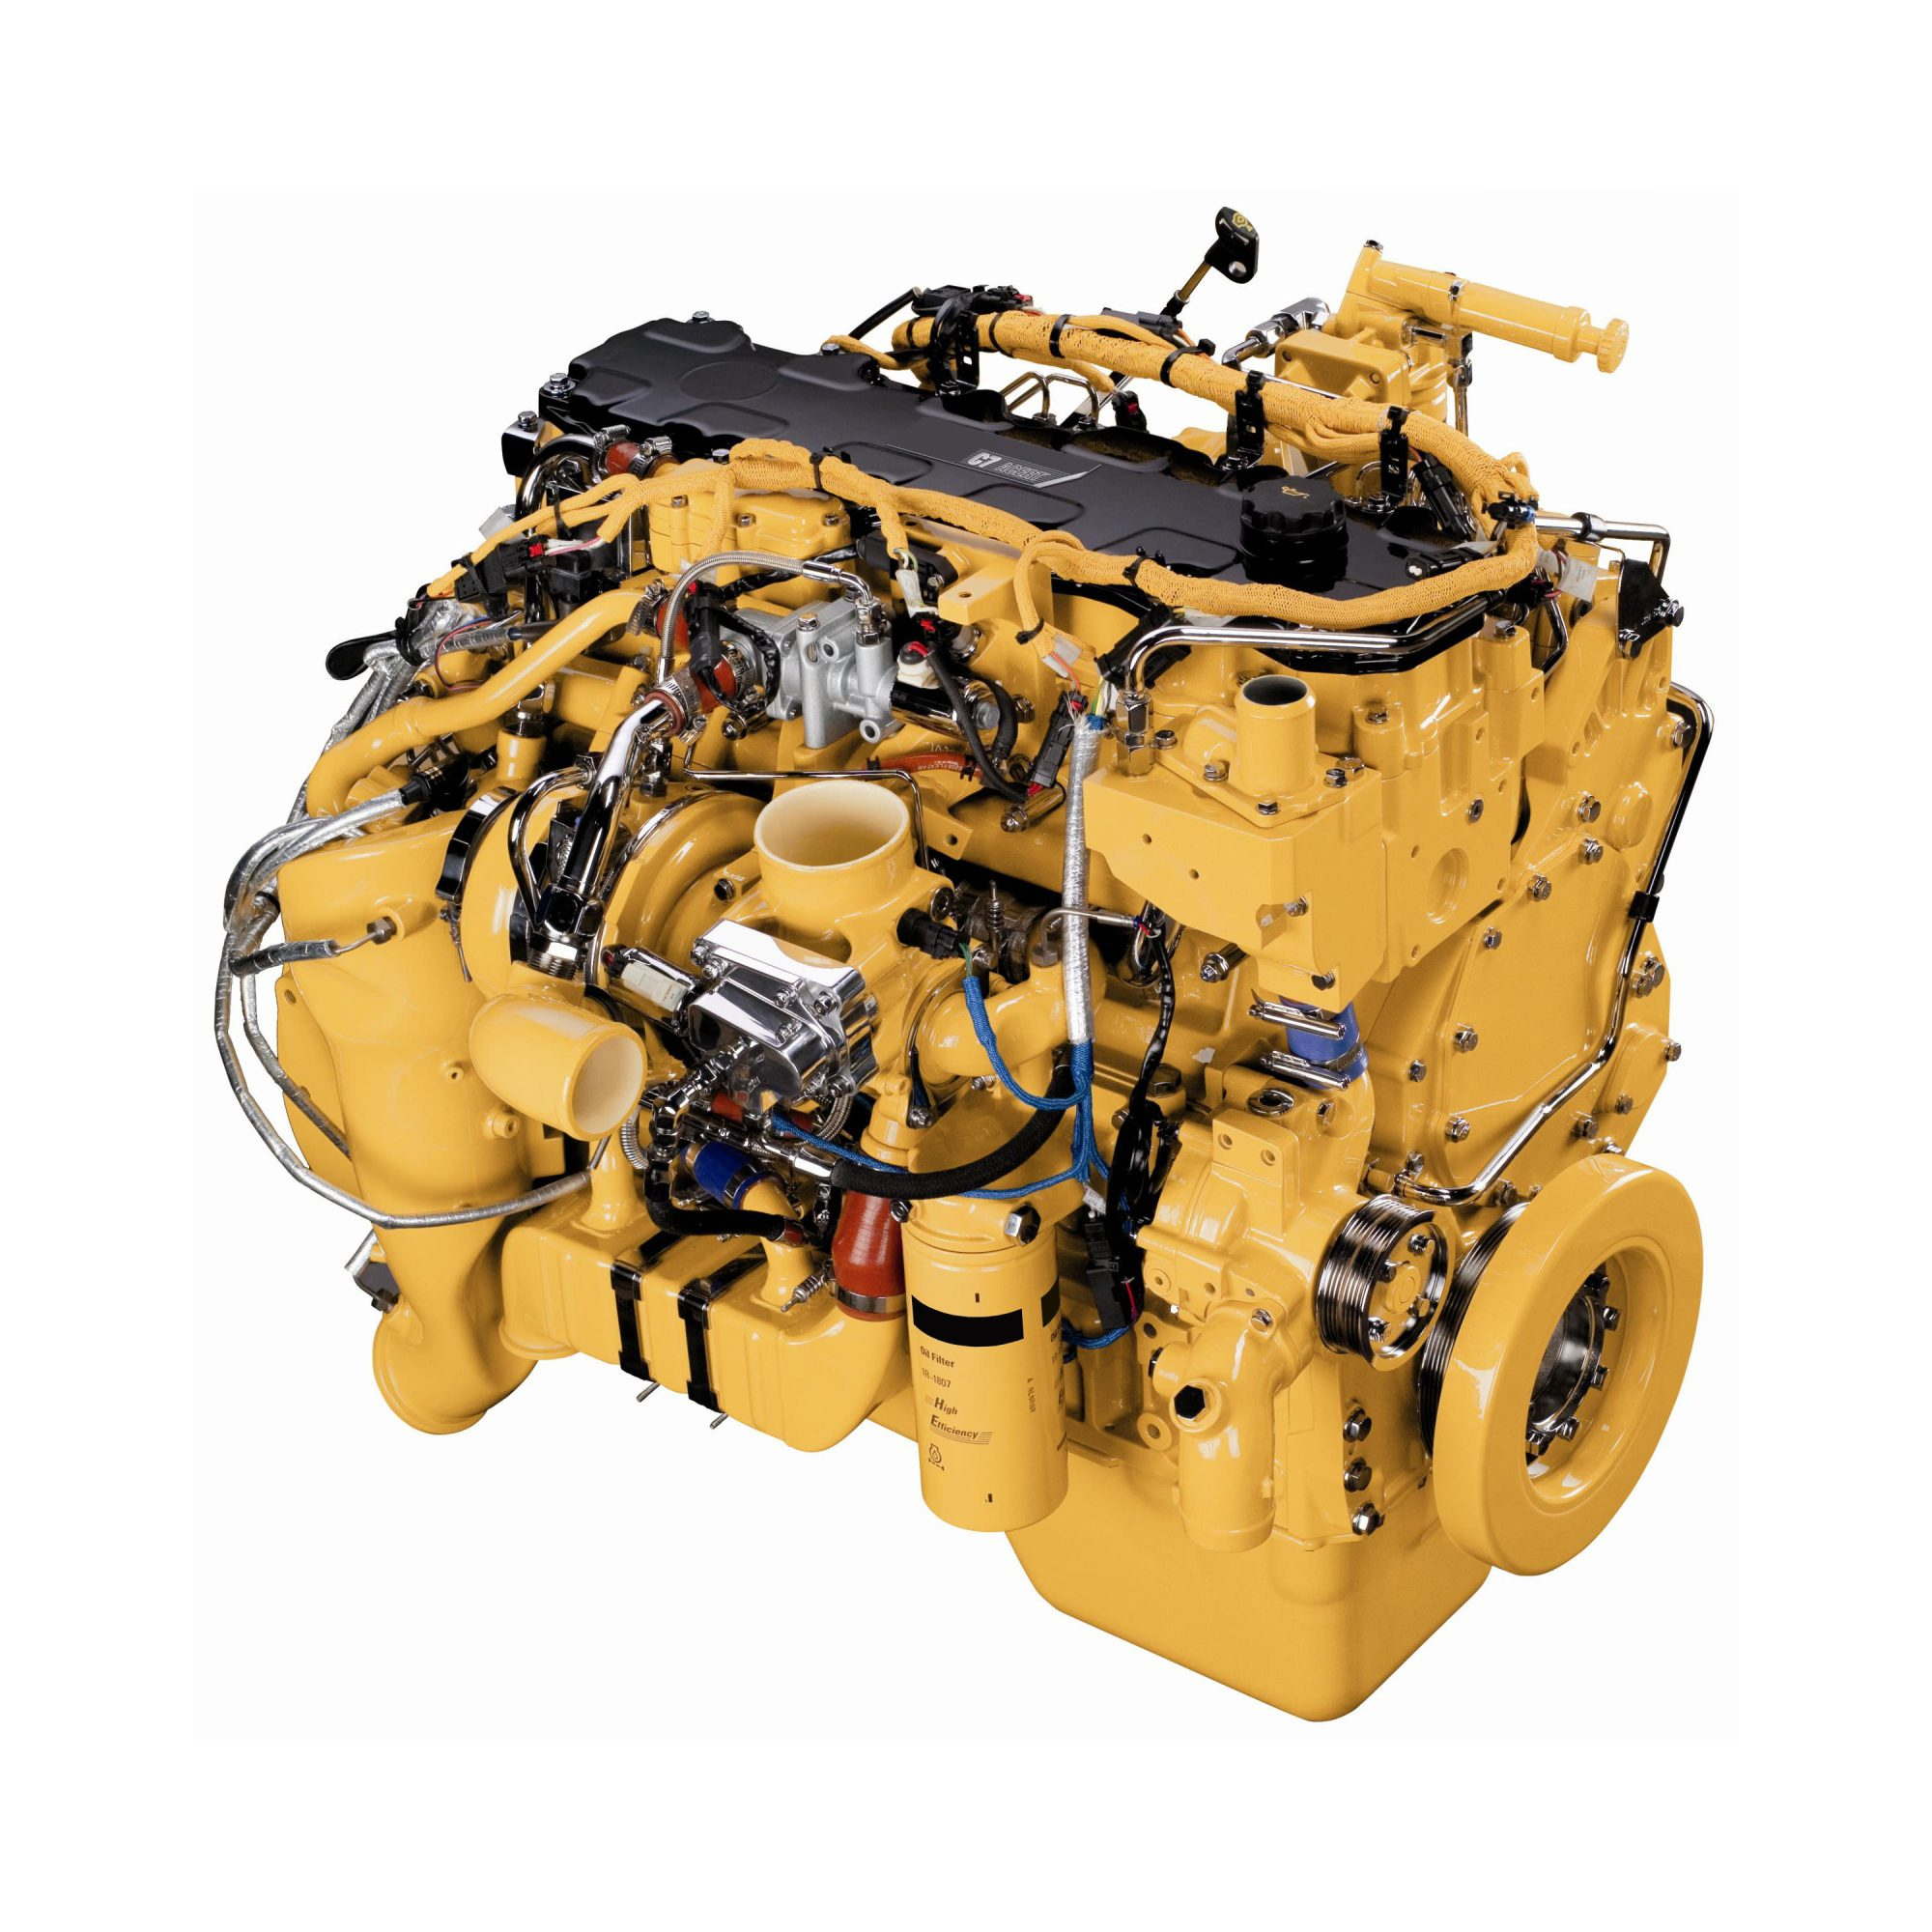 hight resolution of caterpillar c15 caterpillar c13 caterpillar c7